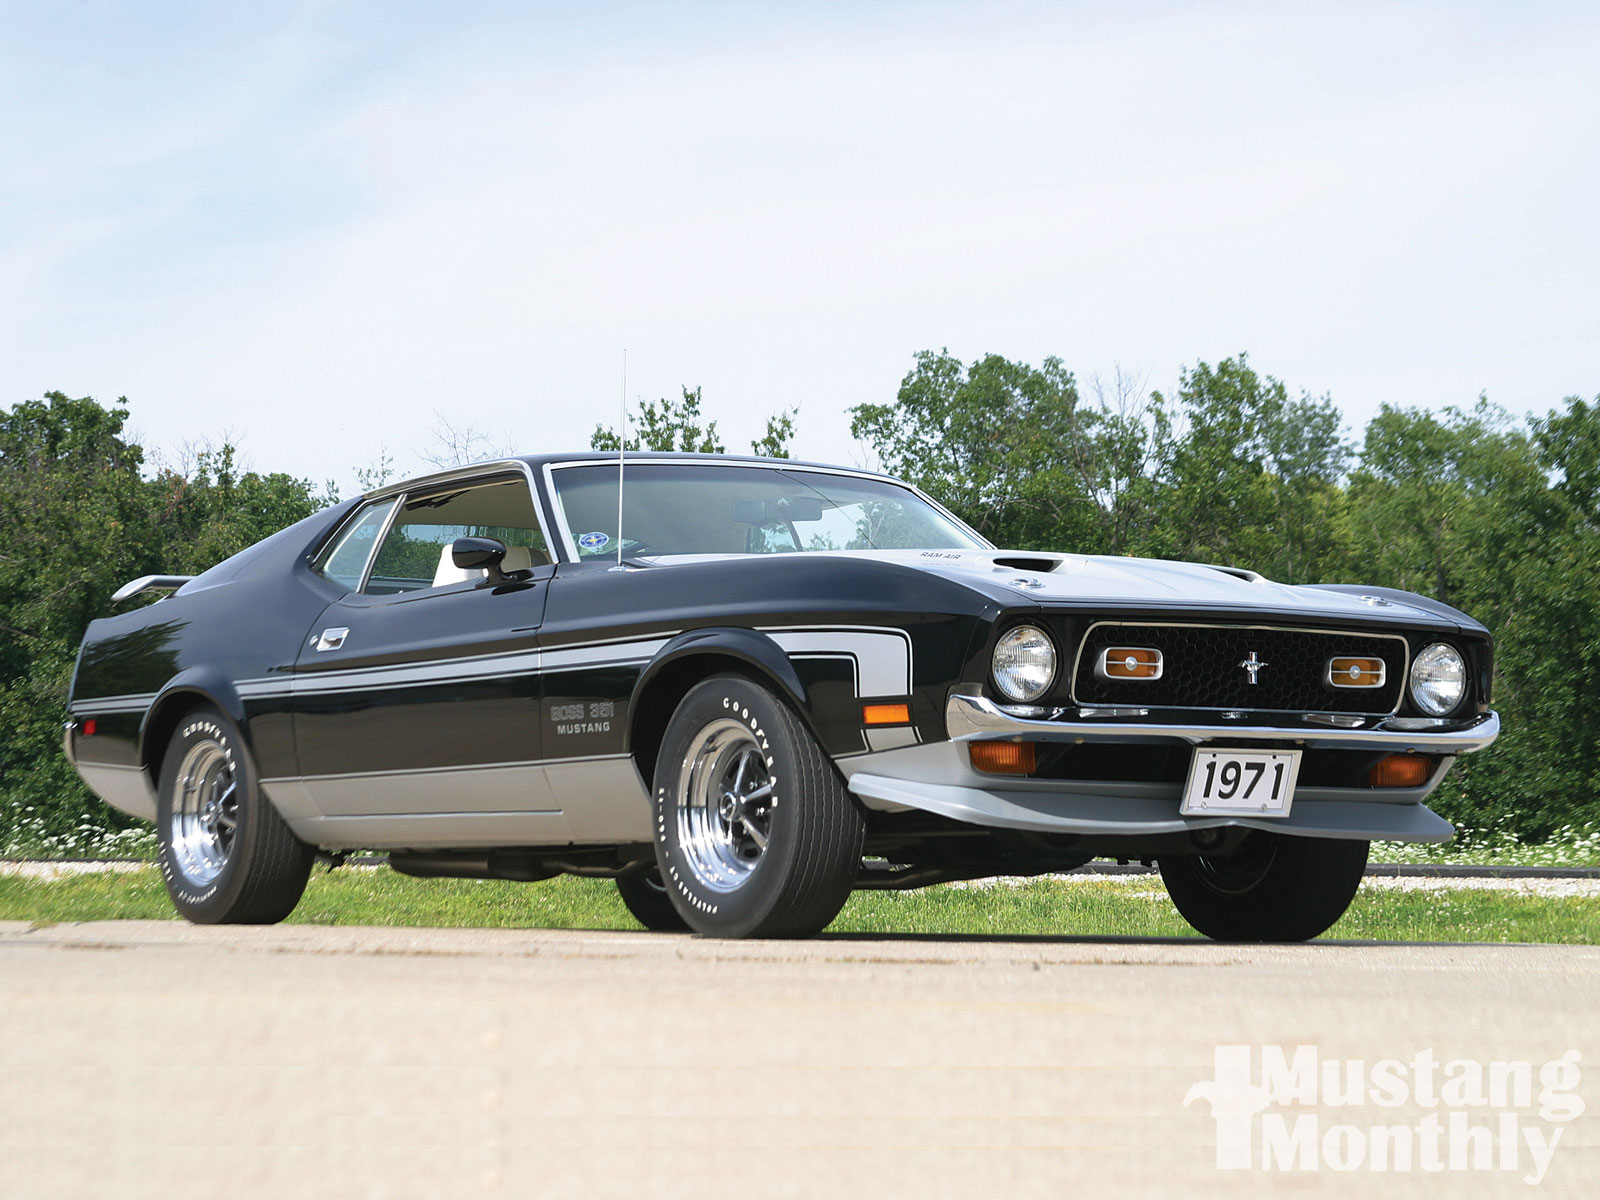 1971 ford mustang boss 351 boss in black photo image gallery